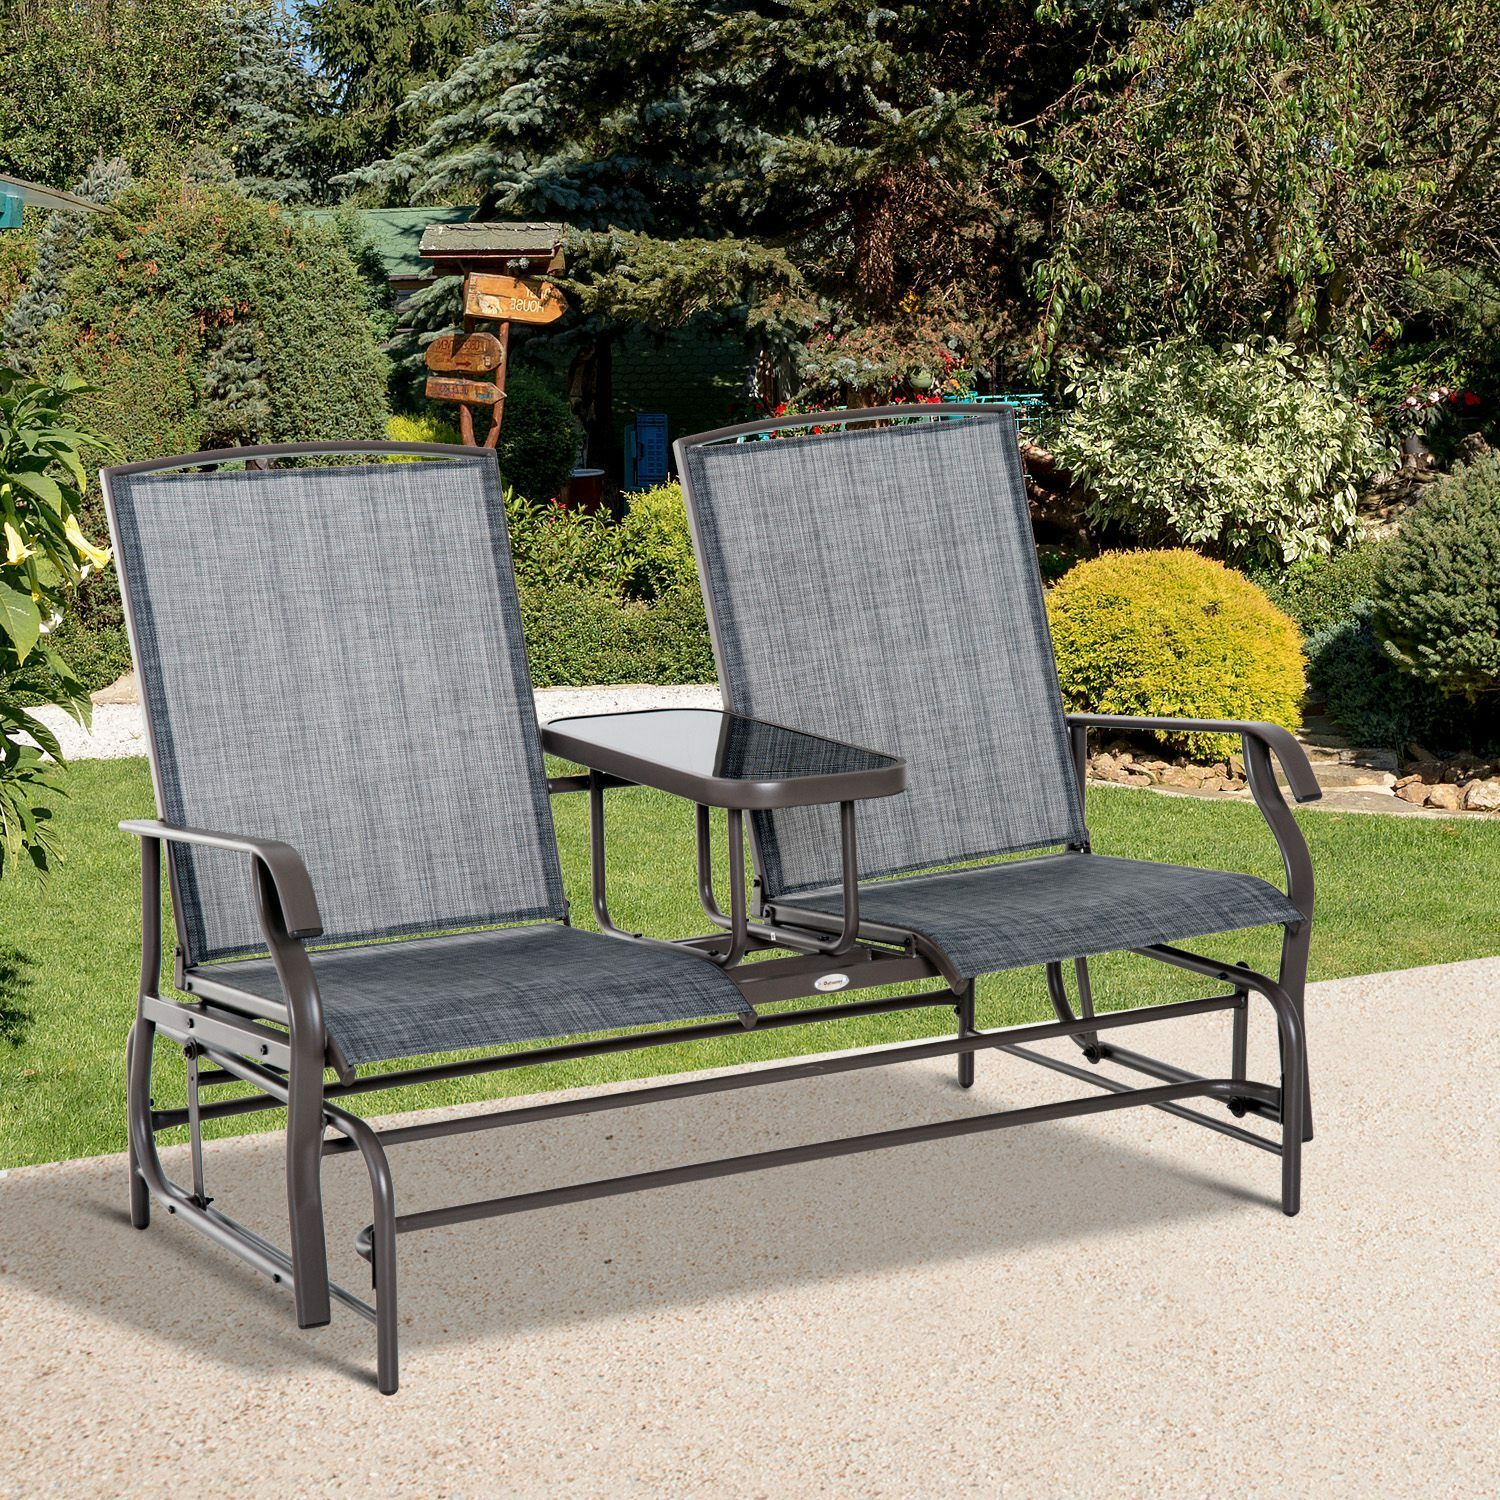 Outsunny 2 Seater Patio Glider Rocking Chair Metal Swing Bench Furniture  Table Regarding Rocking Glider Benches (View 6 of 25)